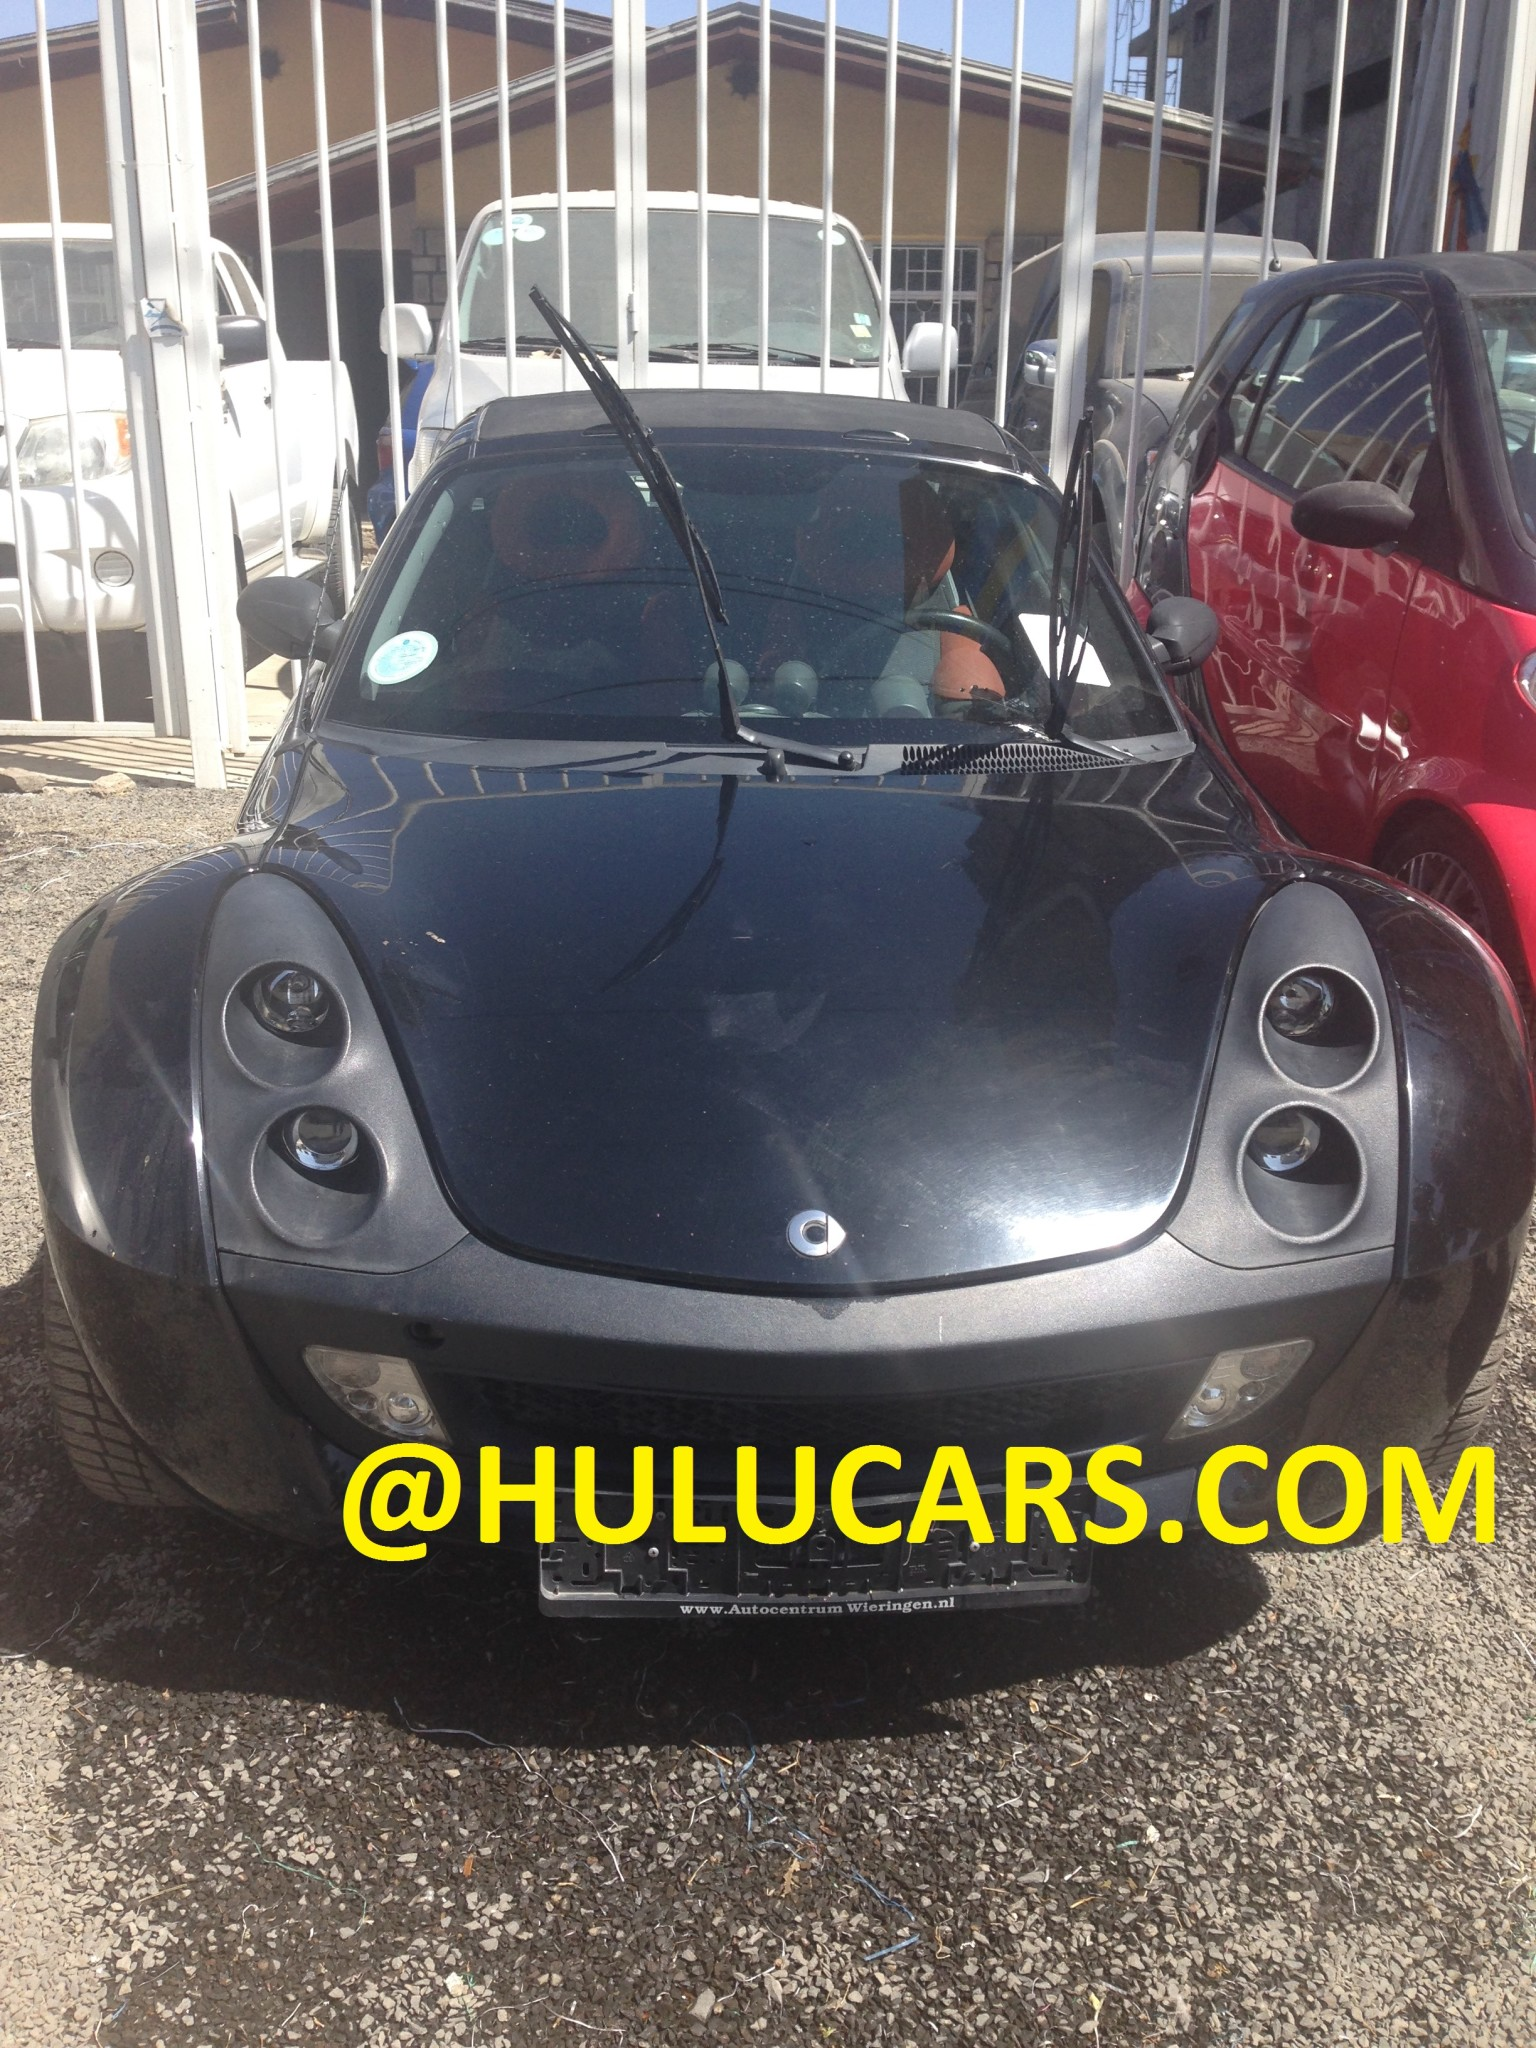 black smart front view for sale in hulucars